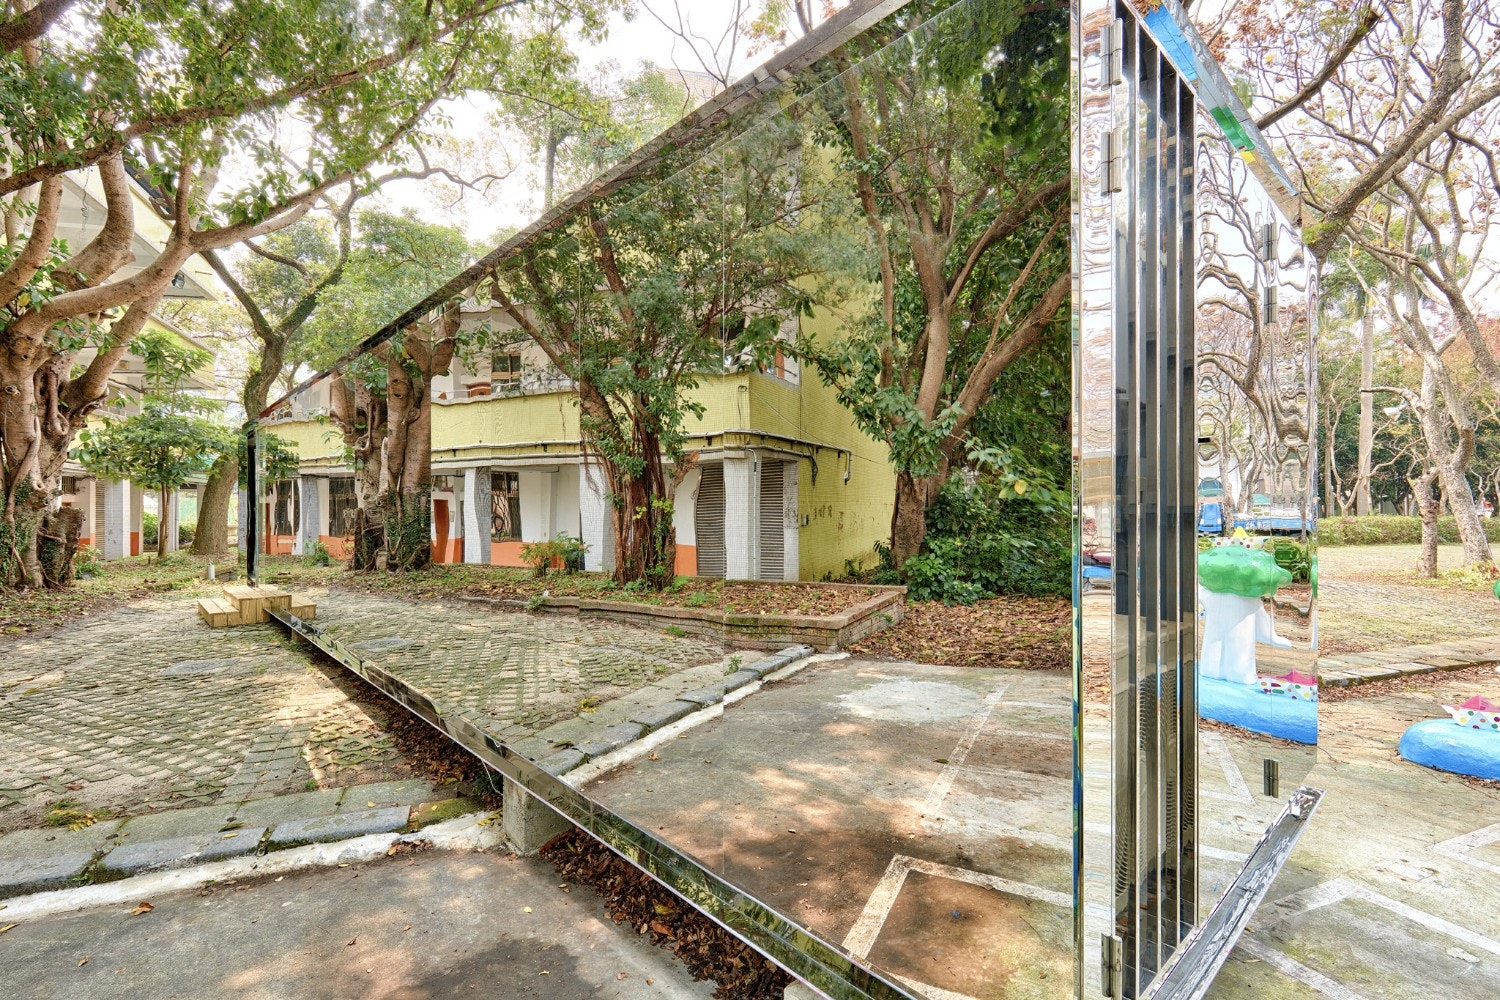 B+P Architects, based in Taiwan, design mirrored art-annex